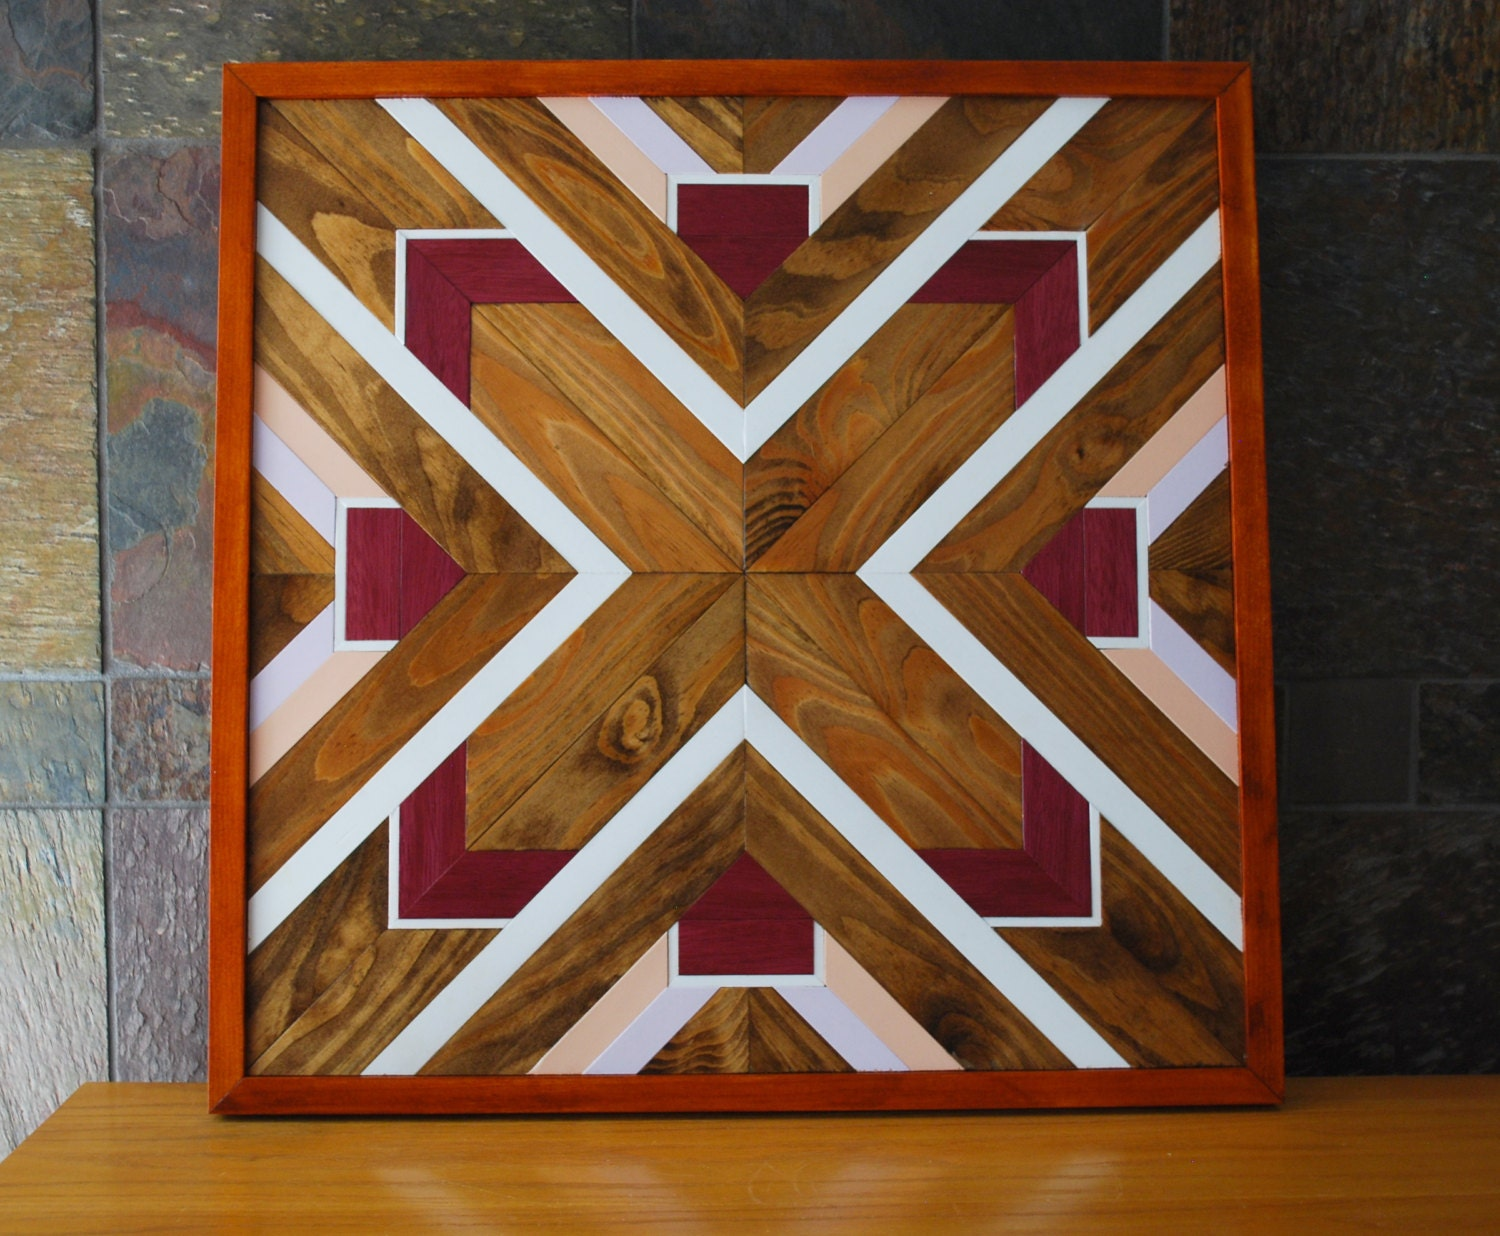 Geometric Design Wall Art : Native american geometric design wood wall art navajo tribal